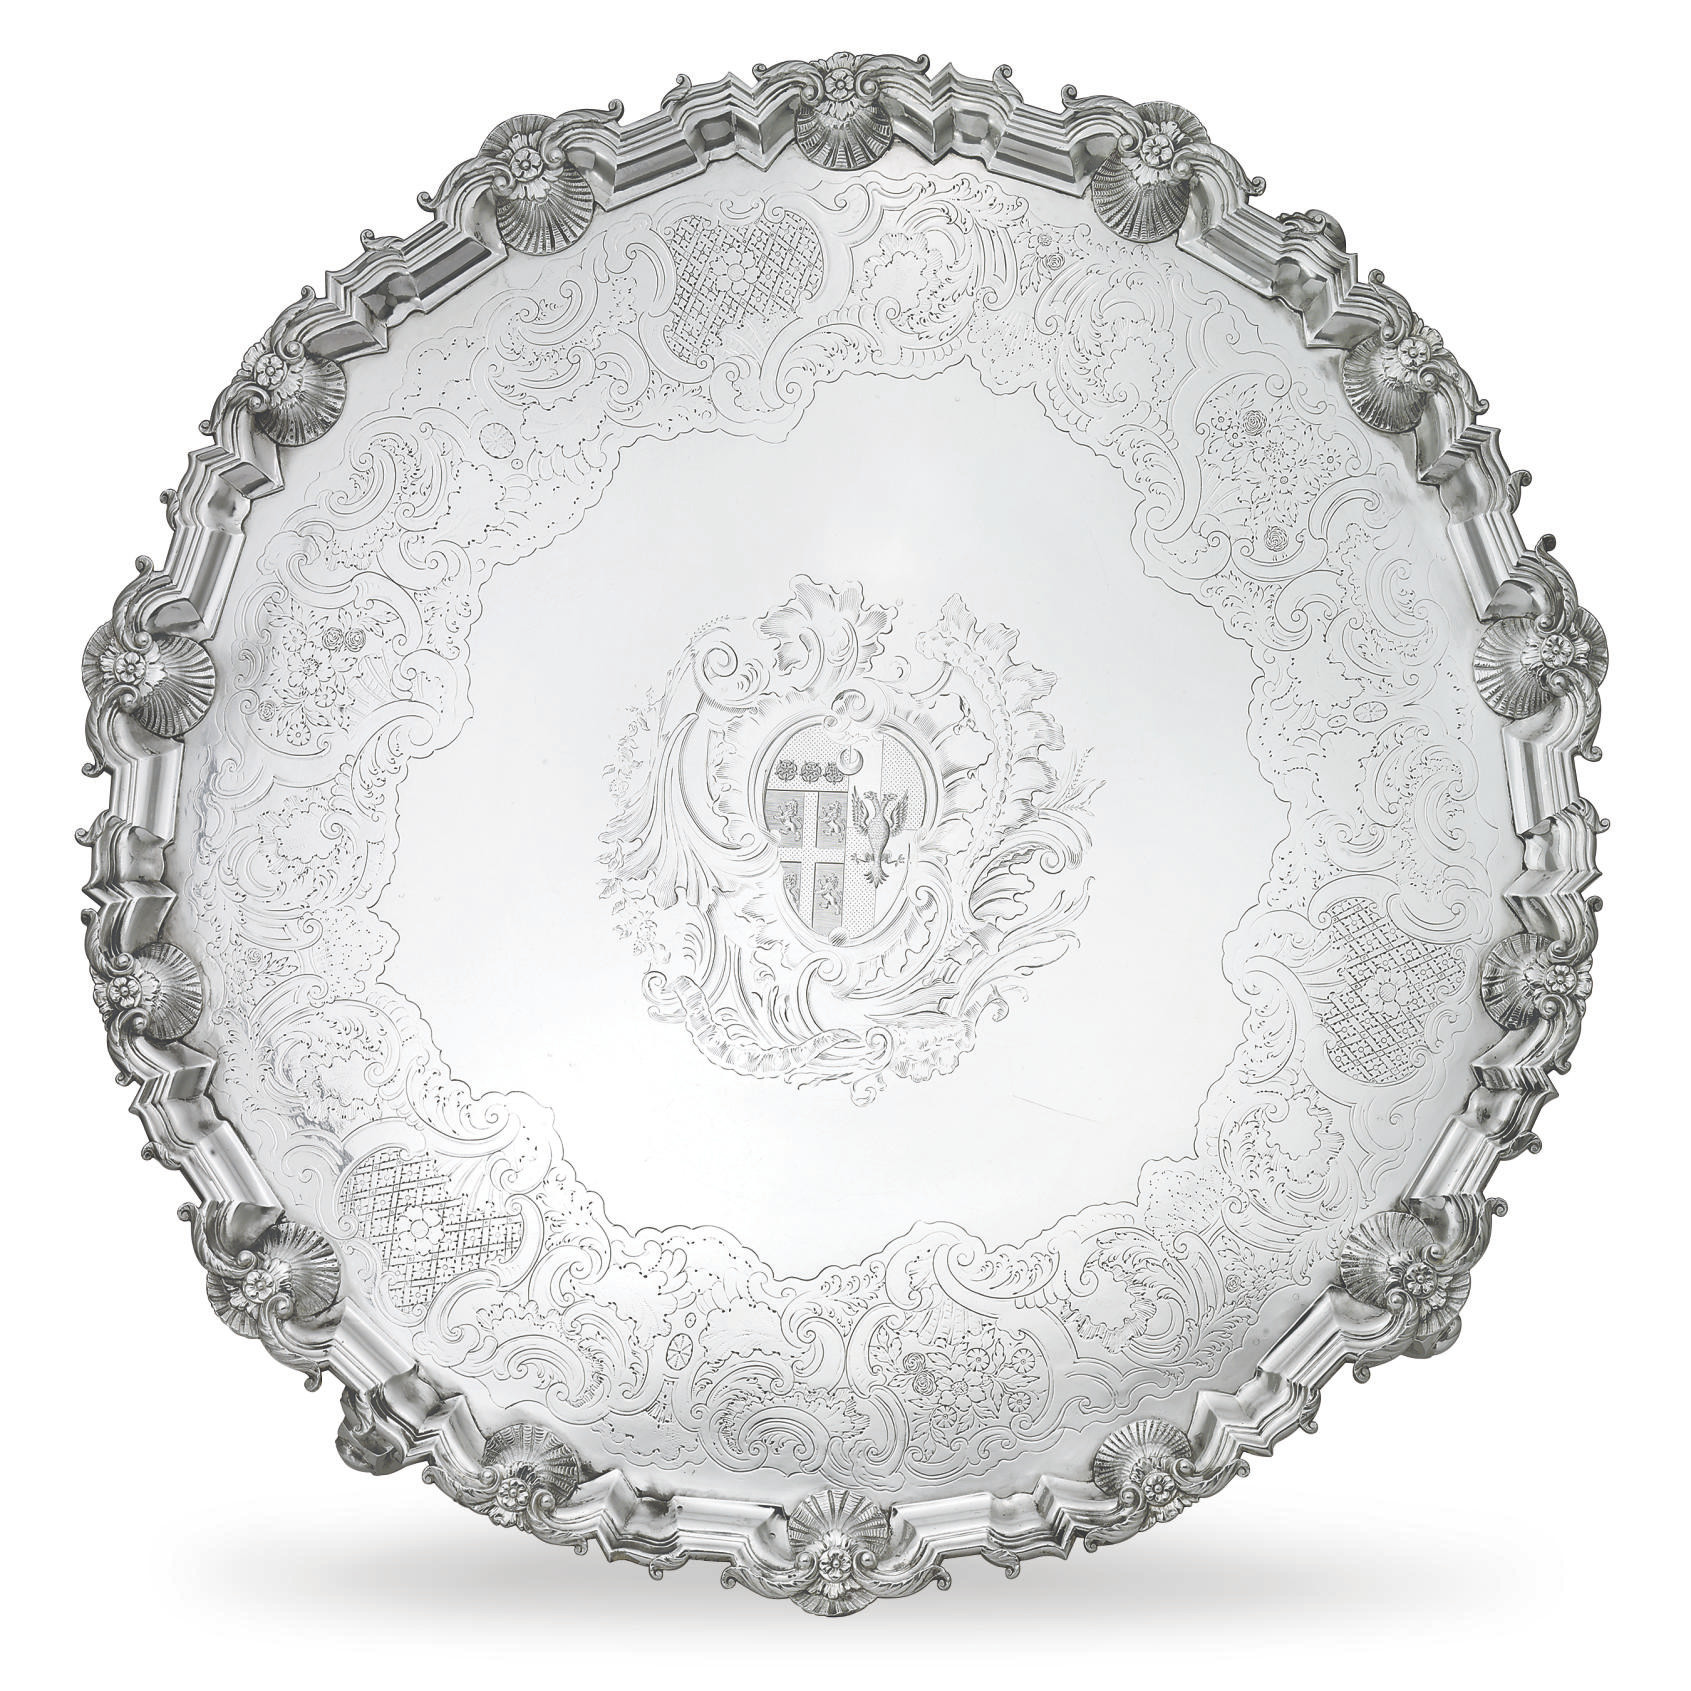 A LARGE GEORGE II SILVER SALVER